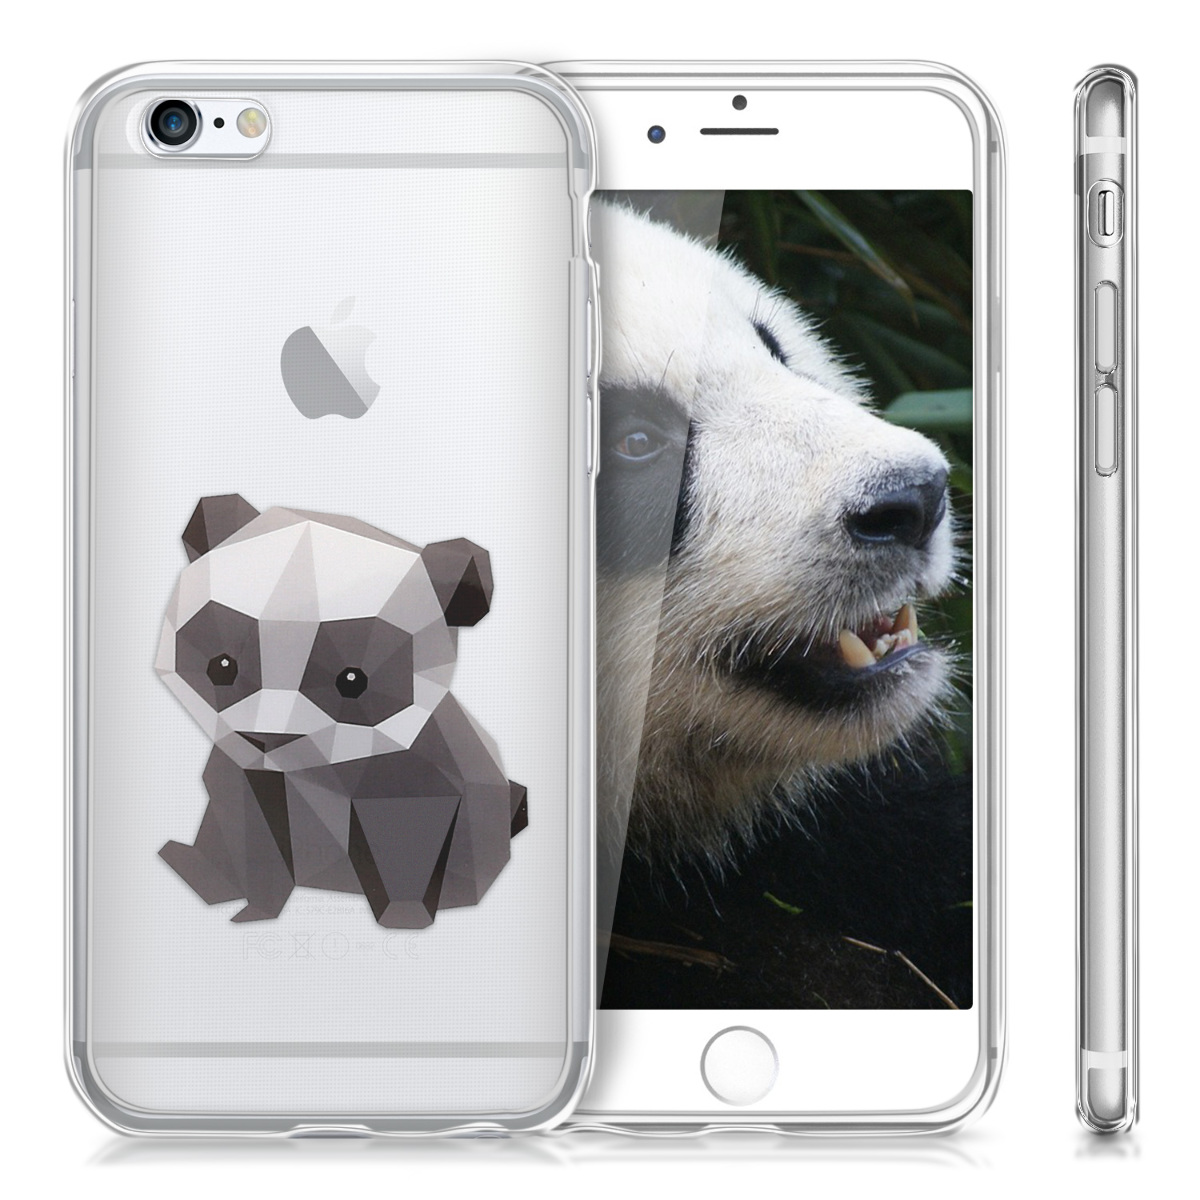 COQUE-EN-SILICONE-POUR-APPLE-IPHONE-6-6S